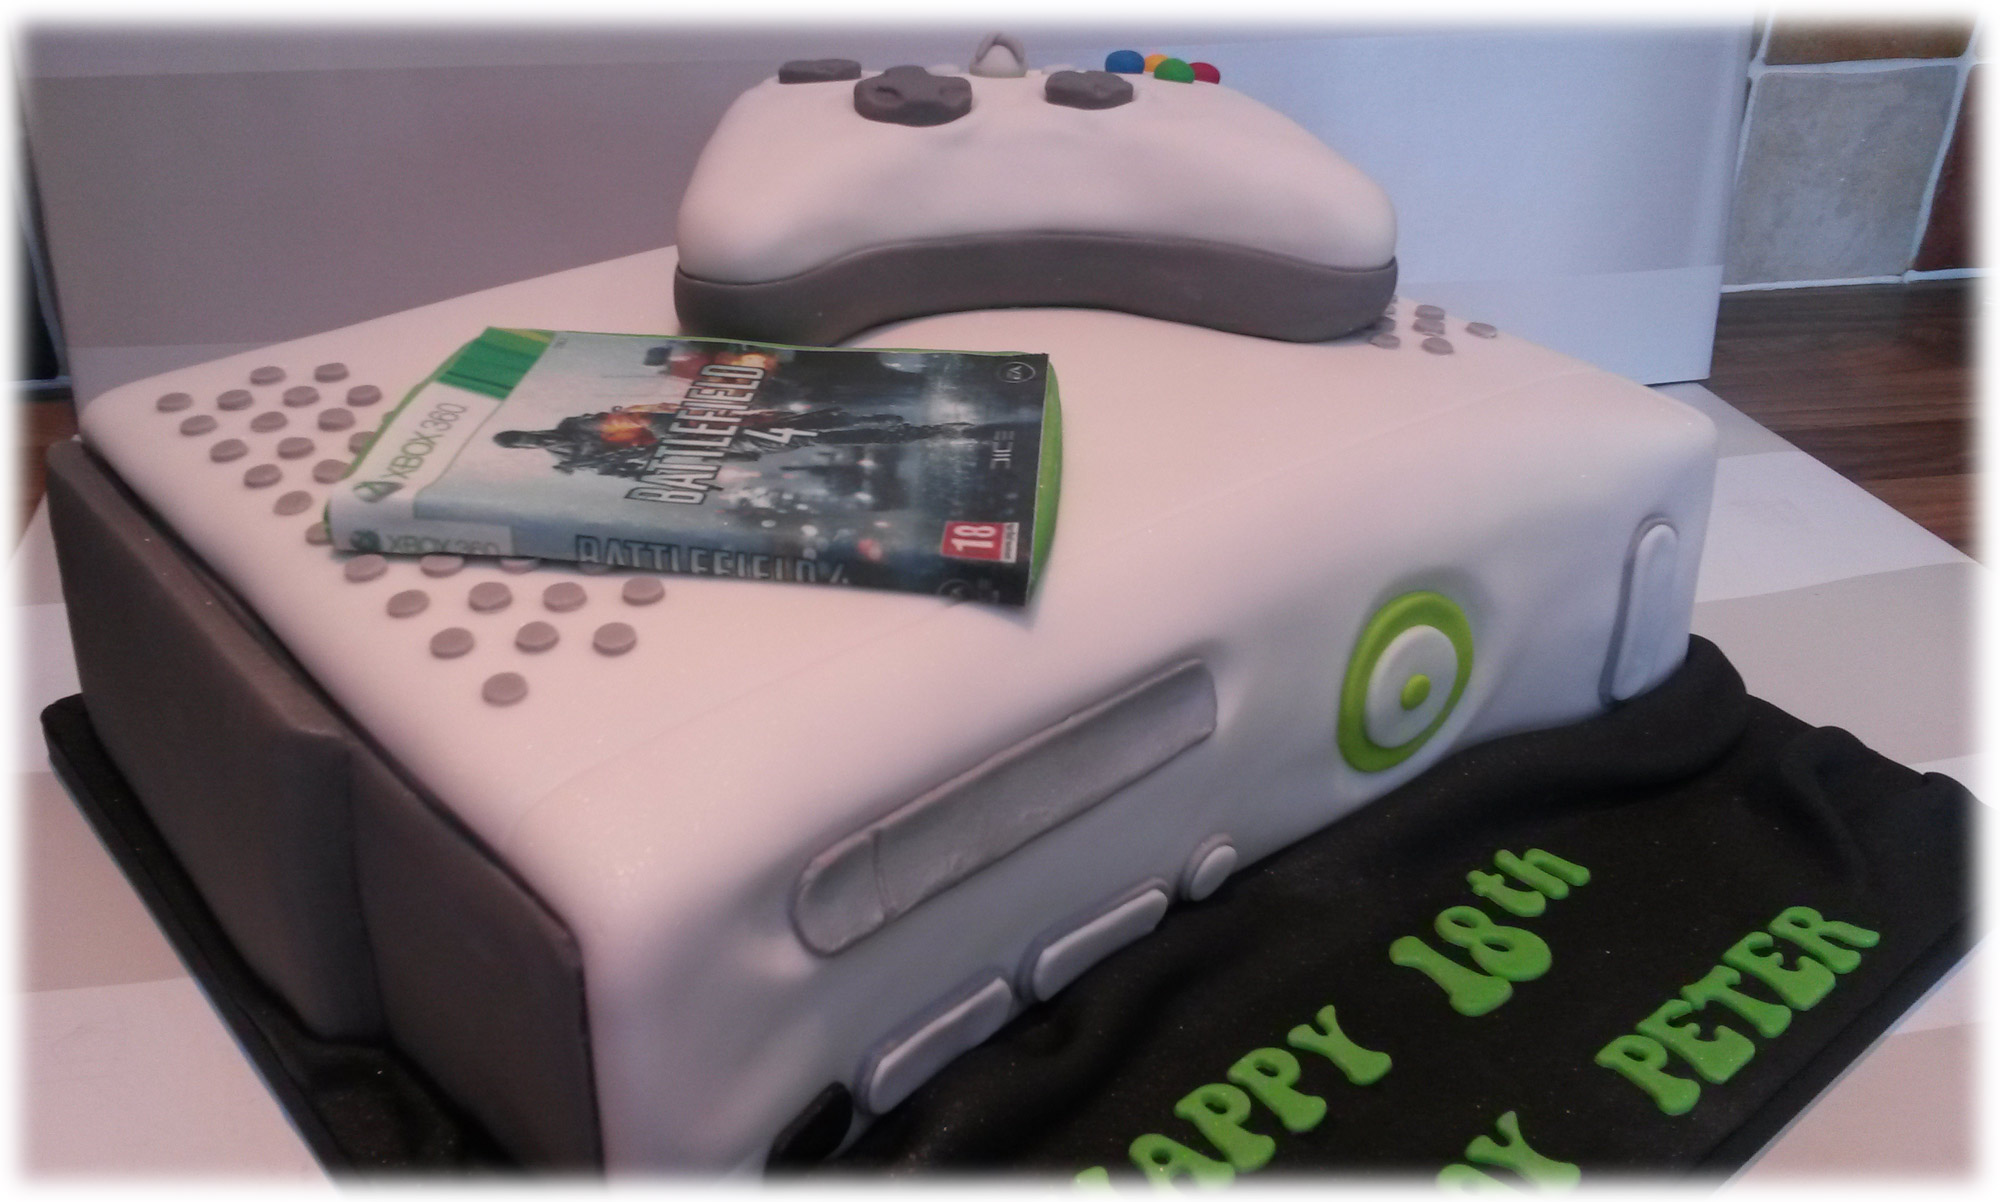 X Box 360 With Battlefield Game Themed 18th Birthday Cake 1